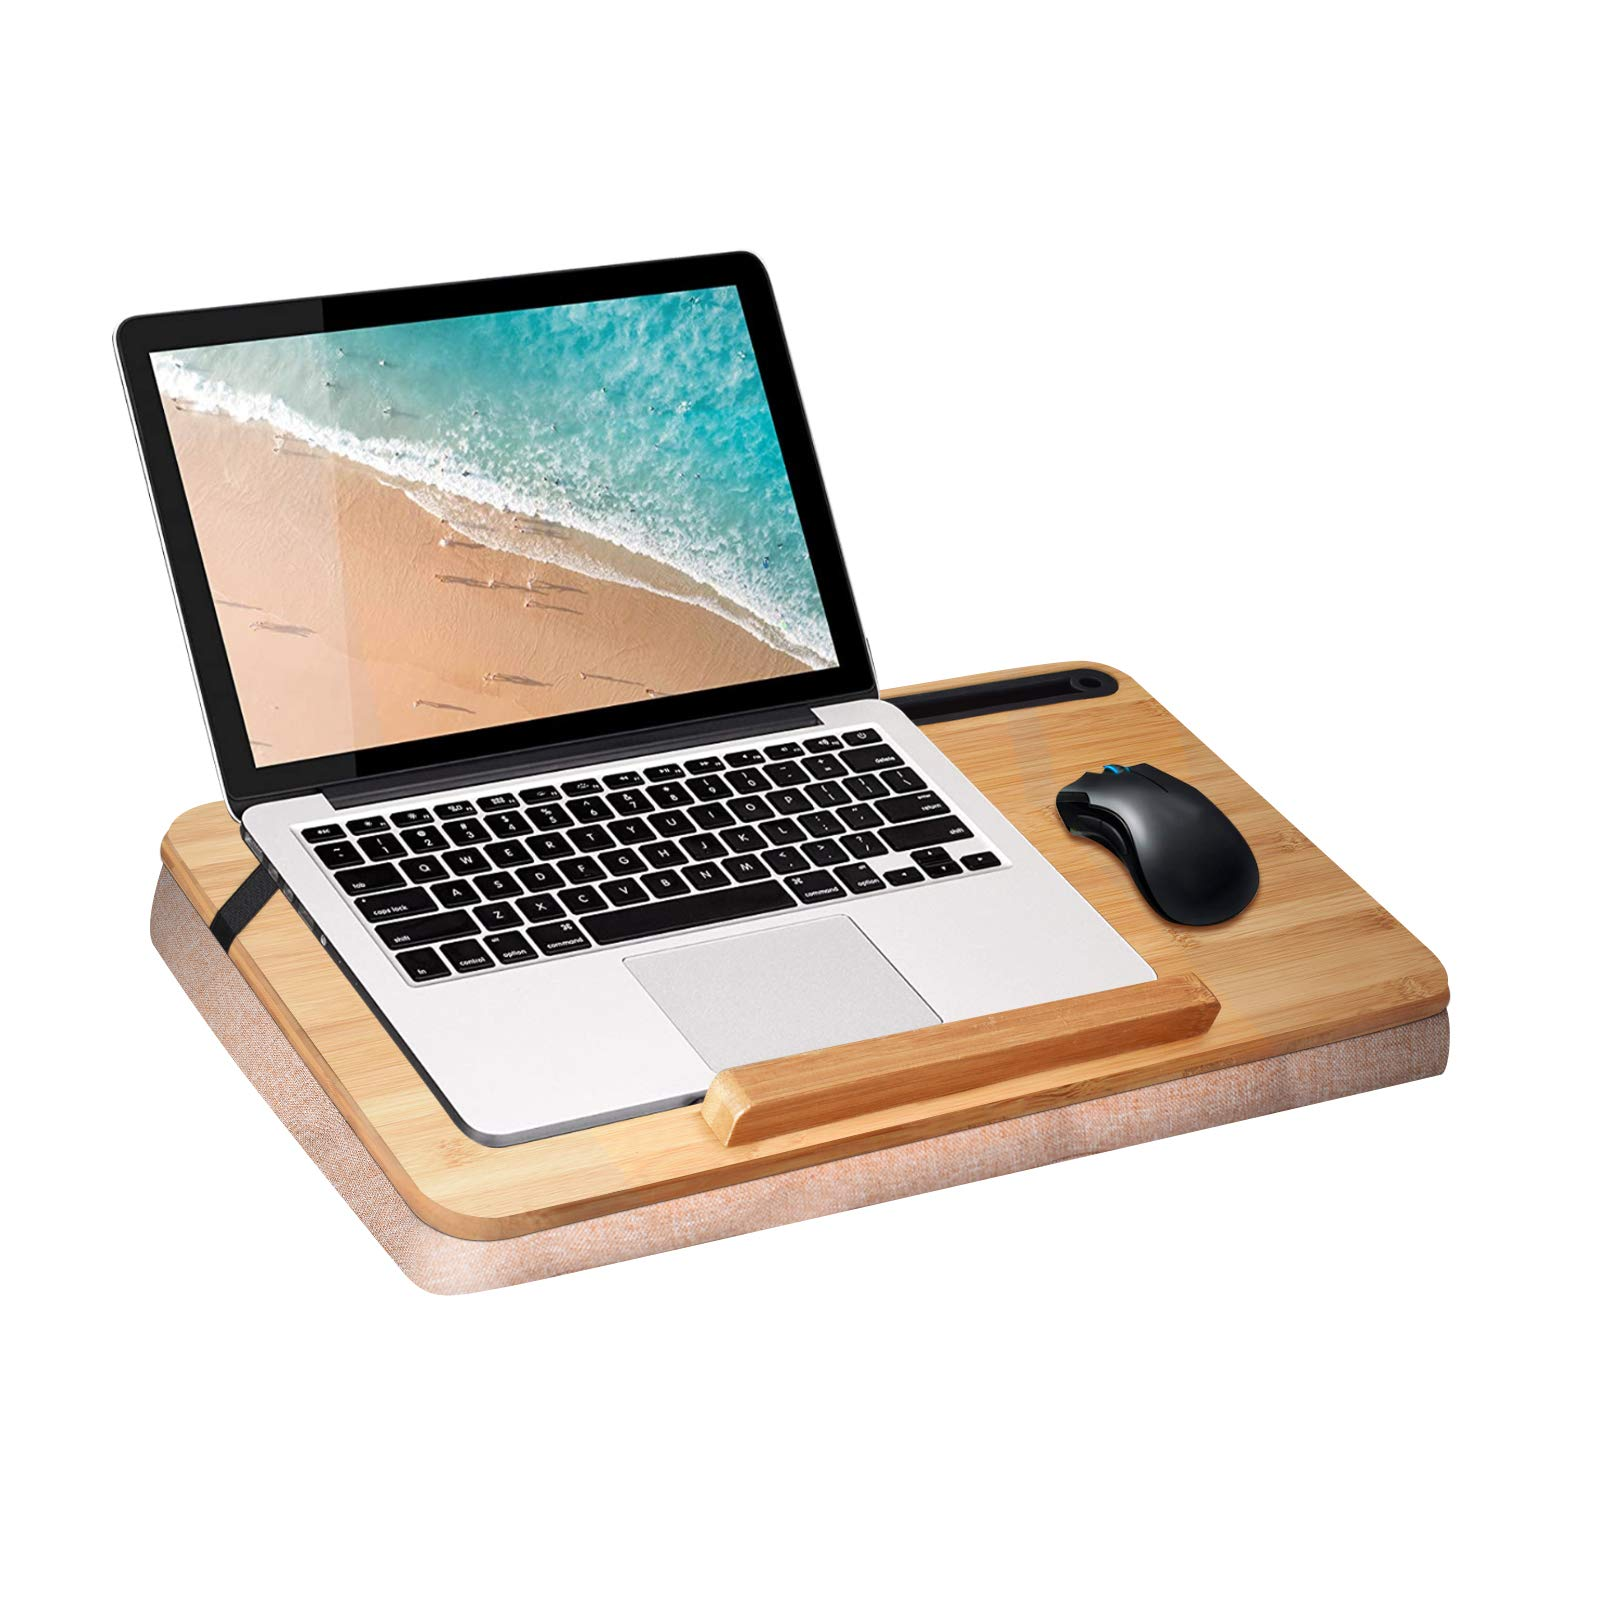 Bamboo Wood Lap Desk with Adjustable Pillow Cushion – wishacc Antique Laptop